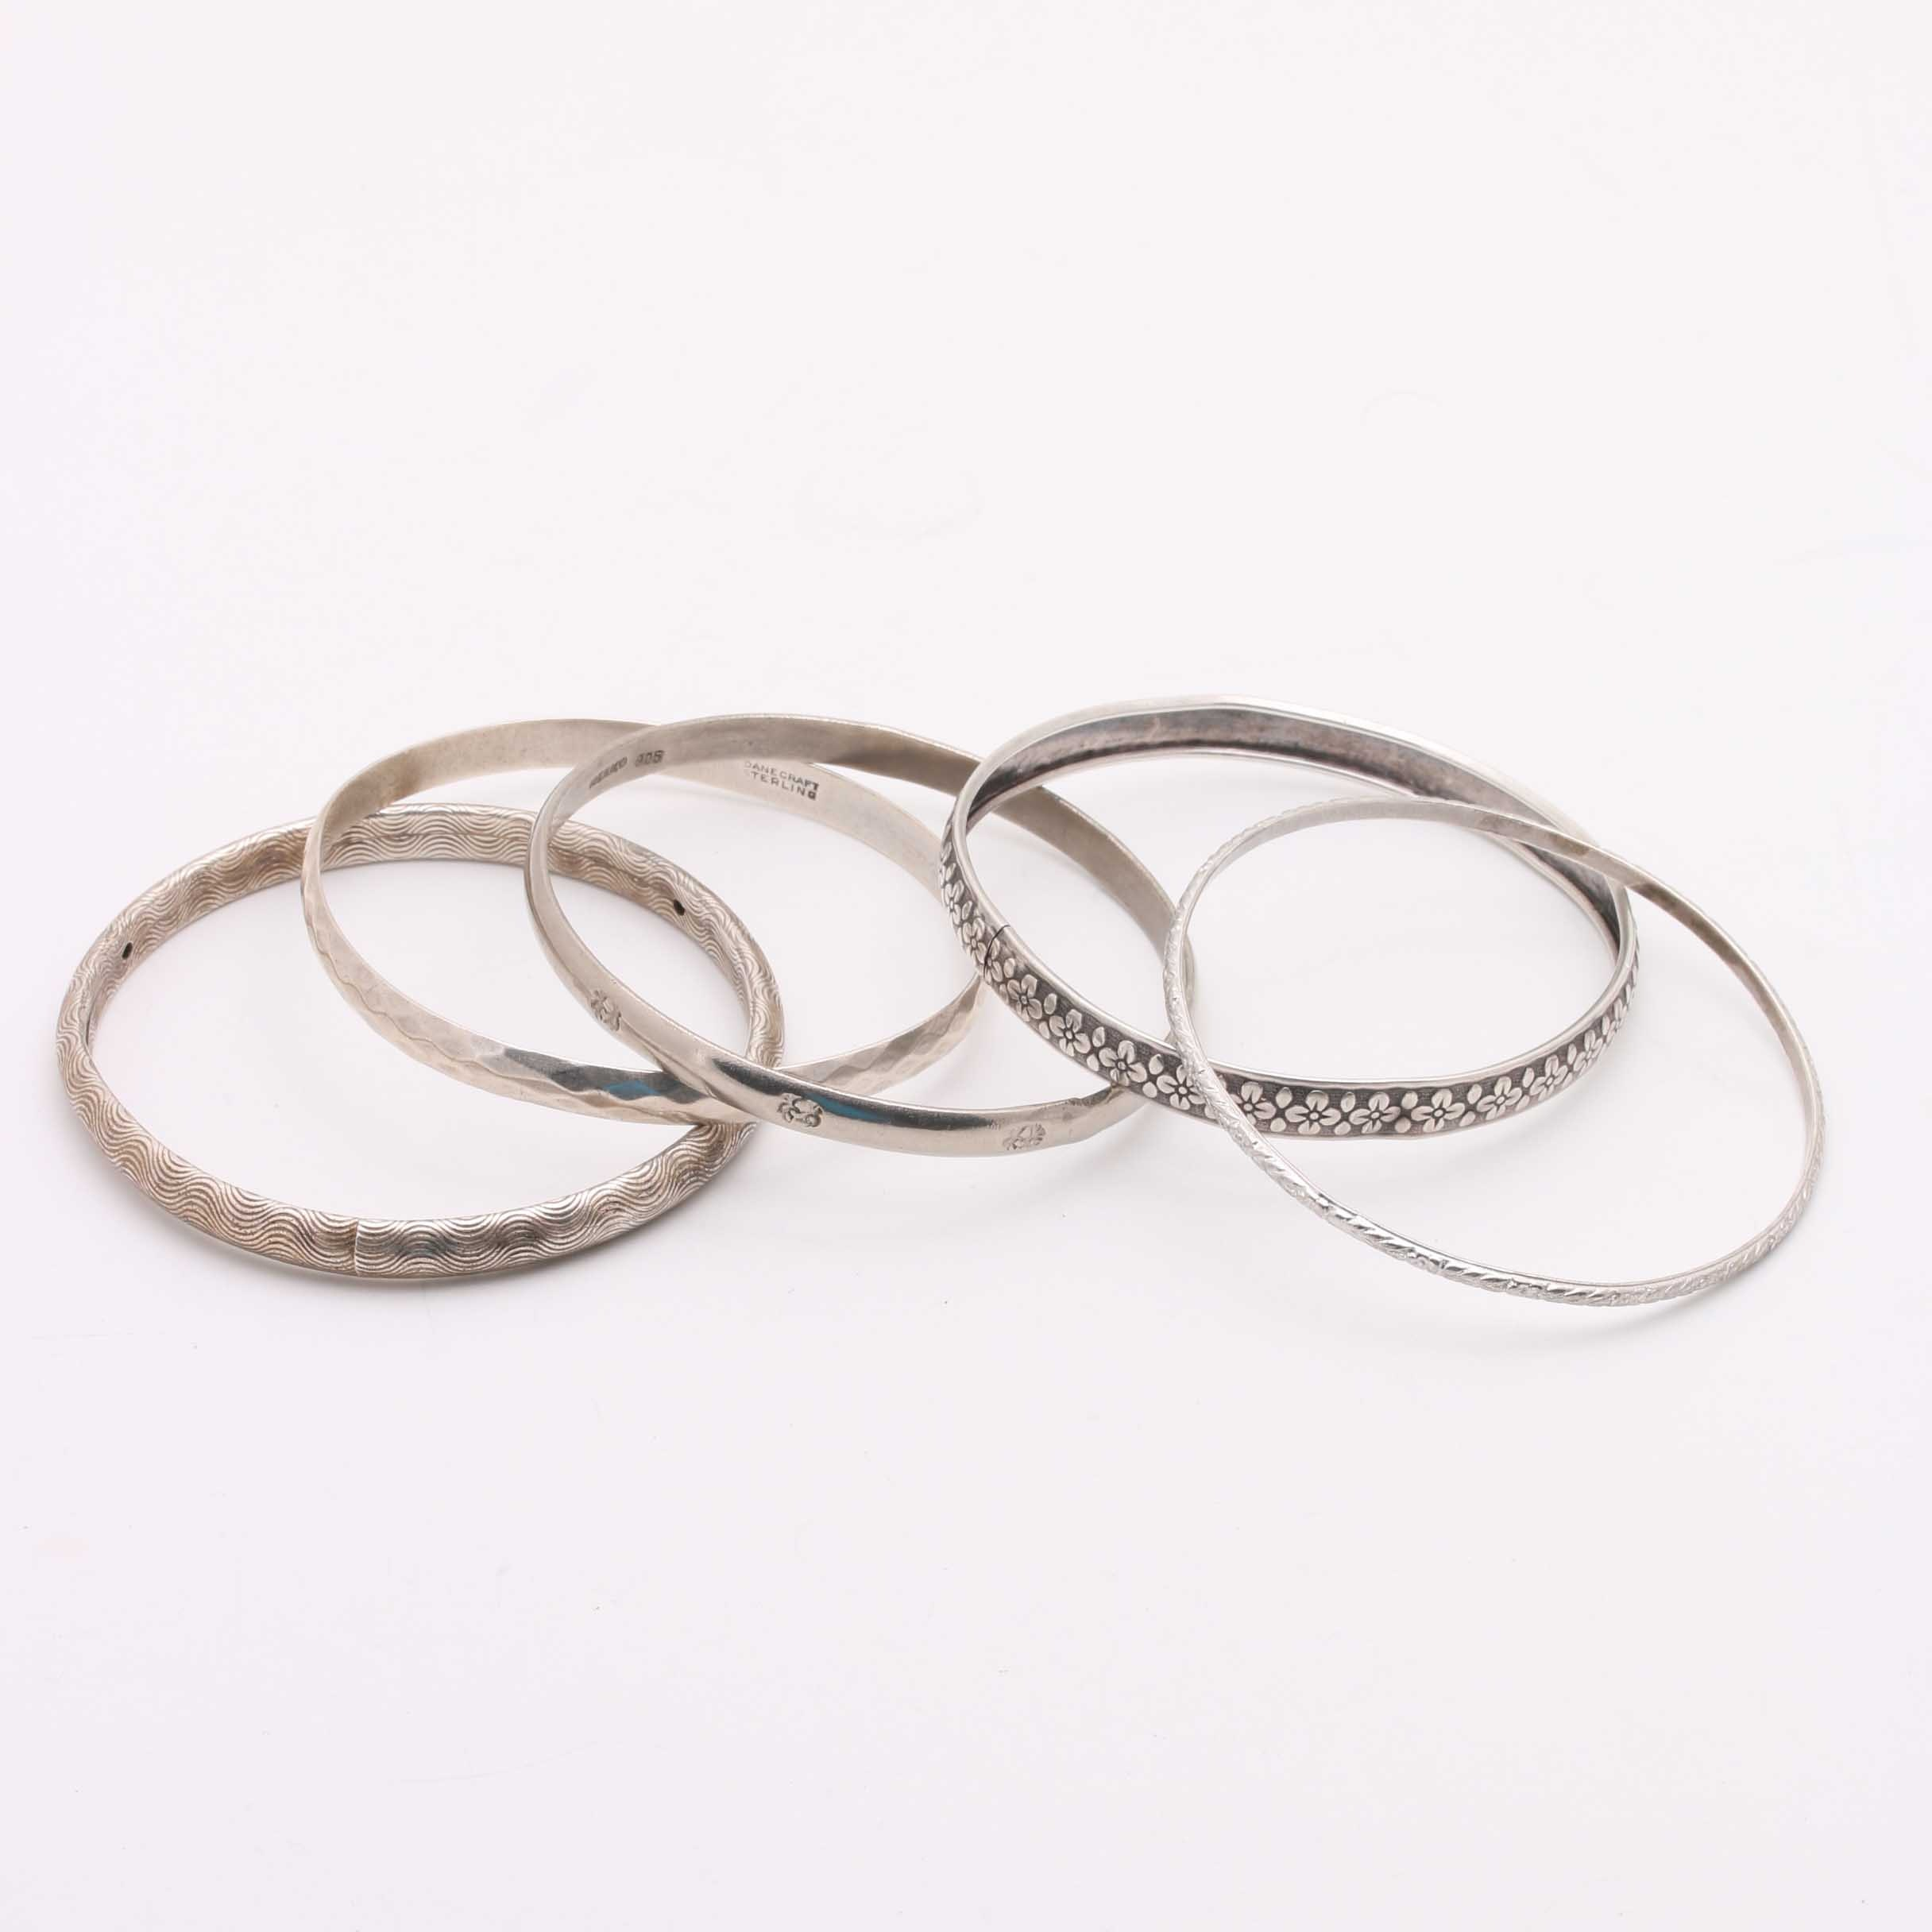 Assortment of Sterling Silver Bangles with Danecraft